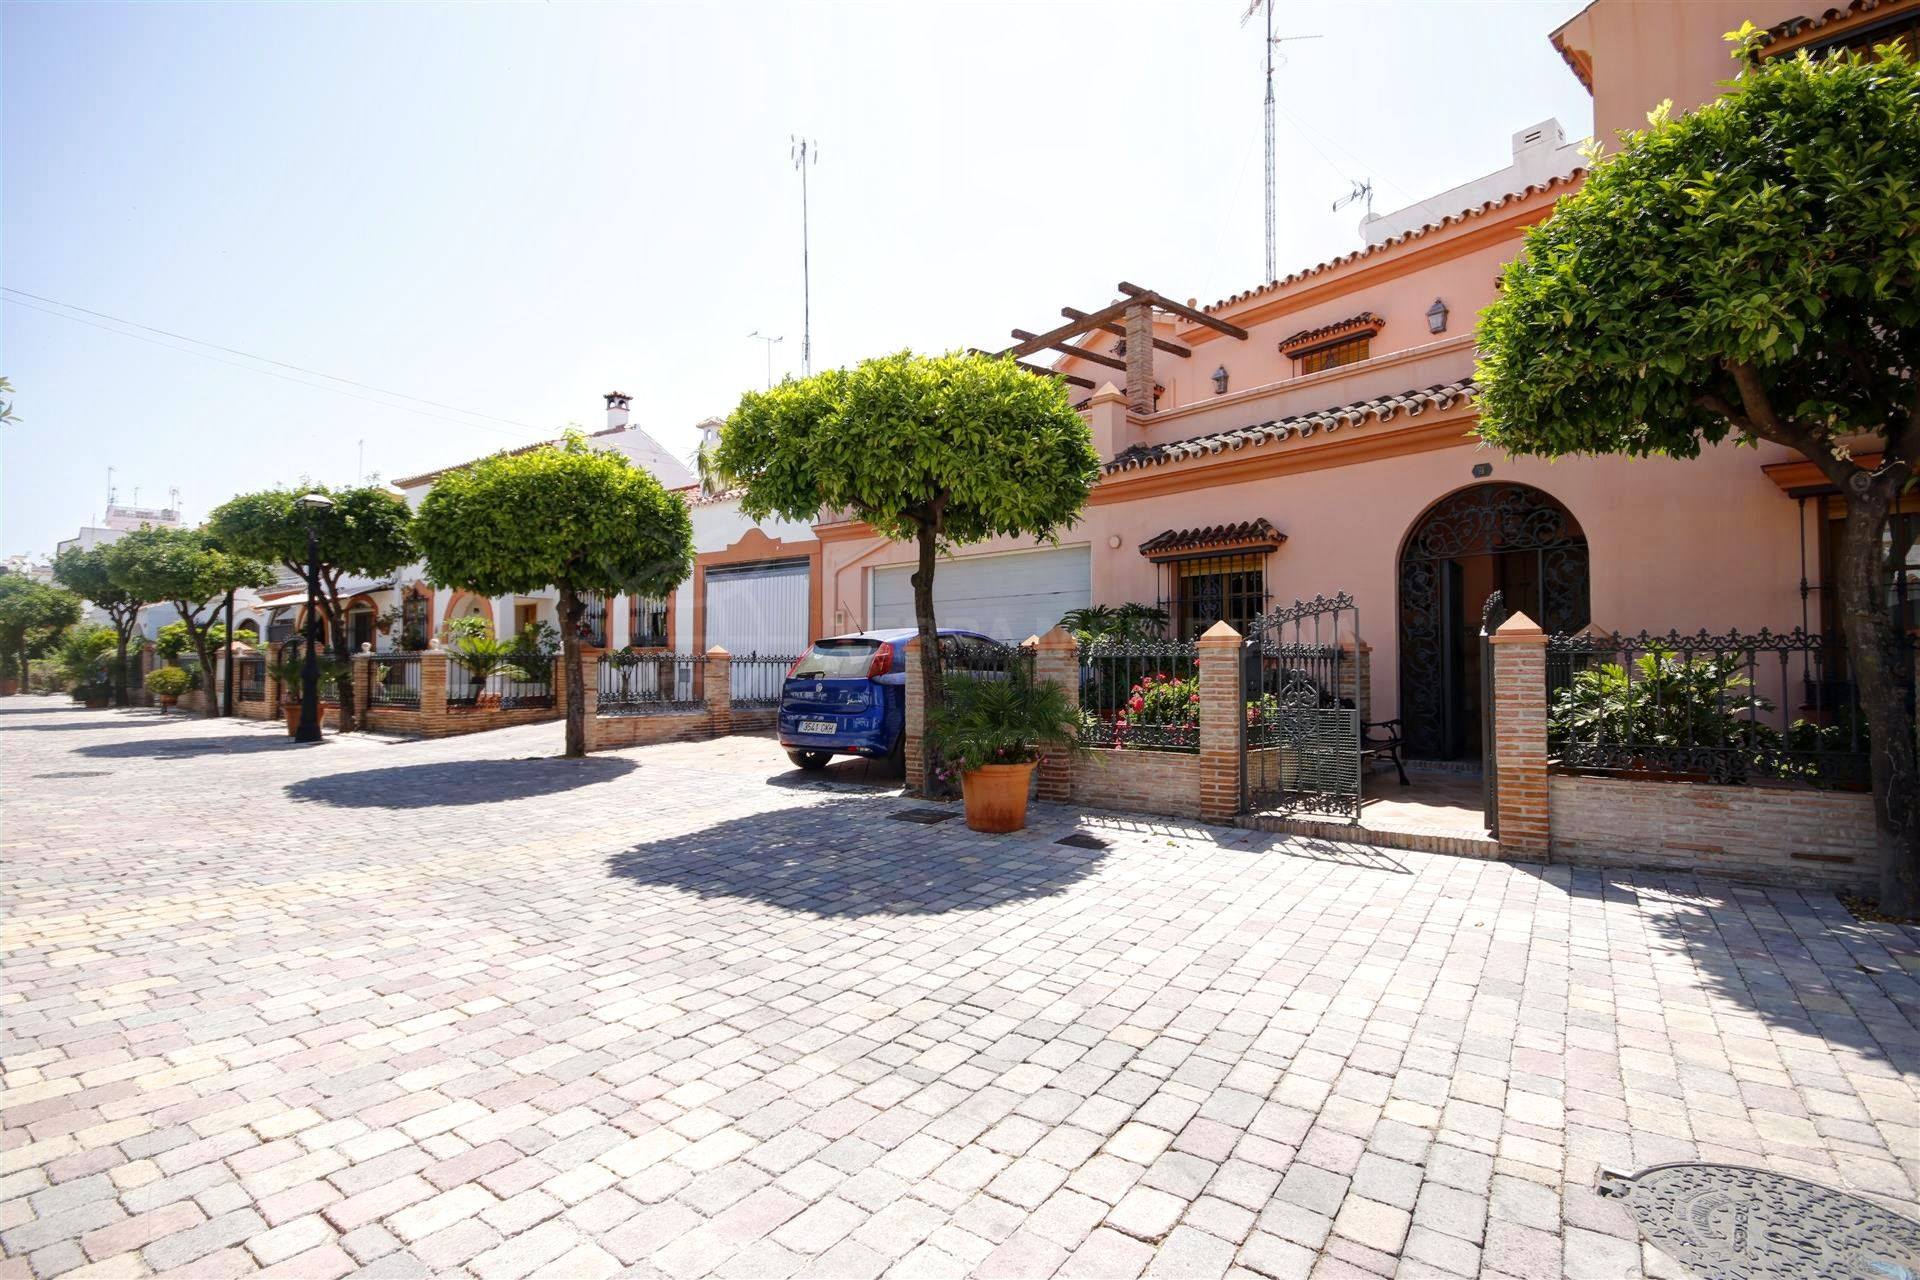 Estepona Old Town property - Properties for sale in Estepona Old Town